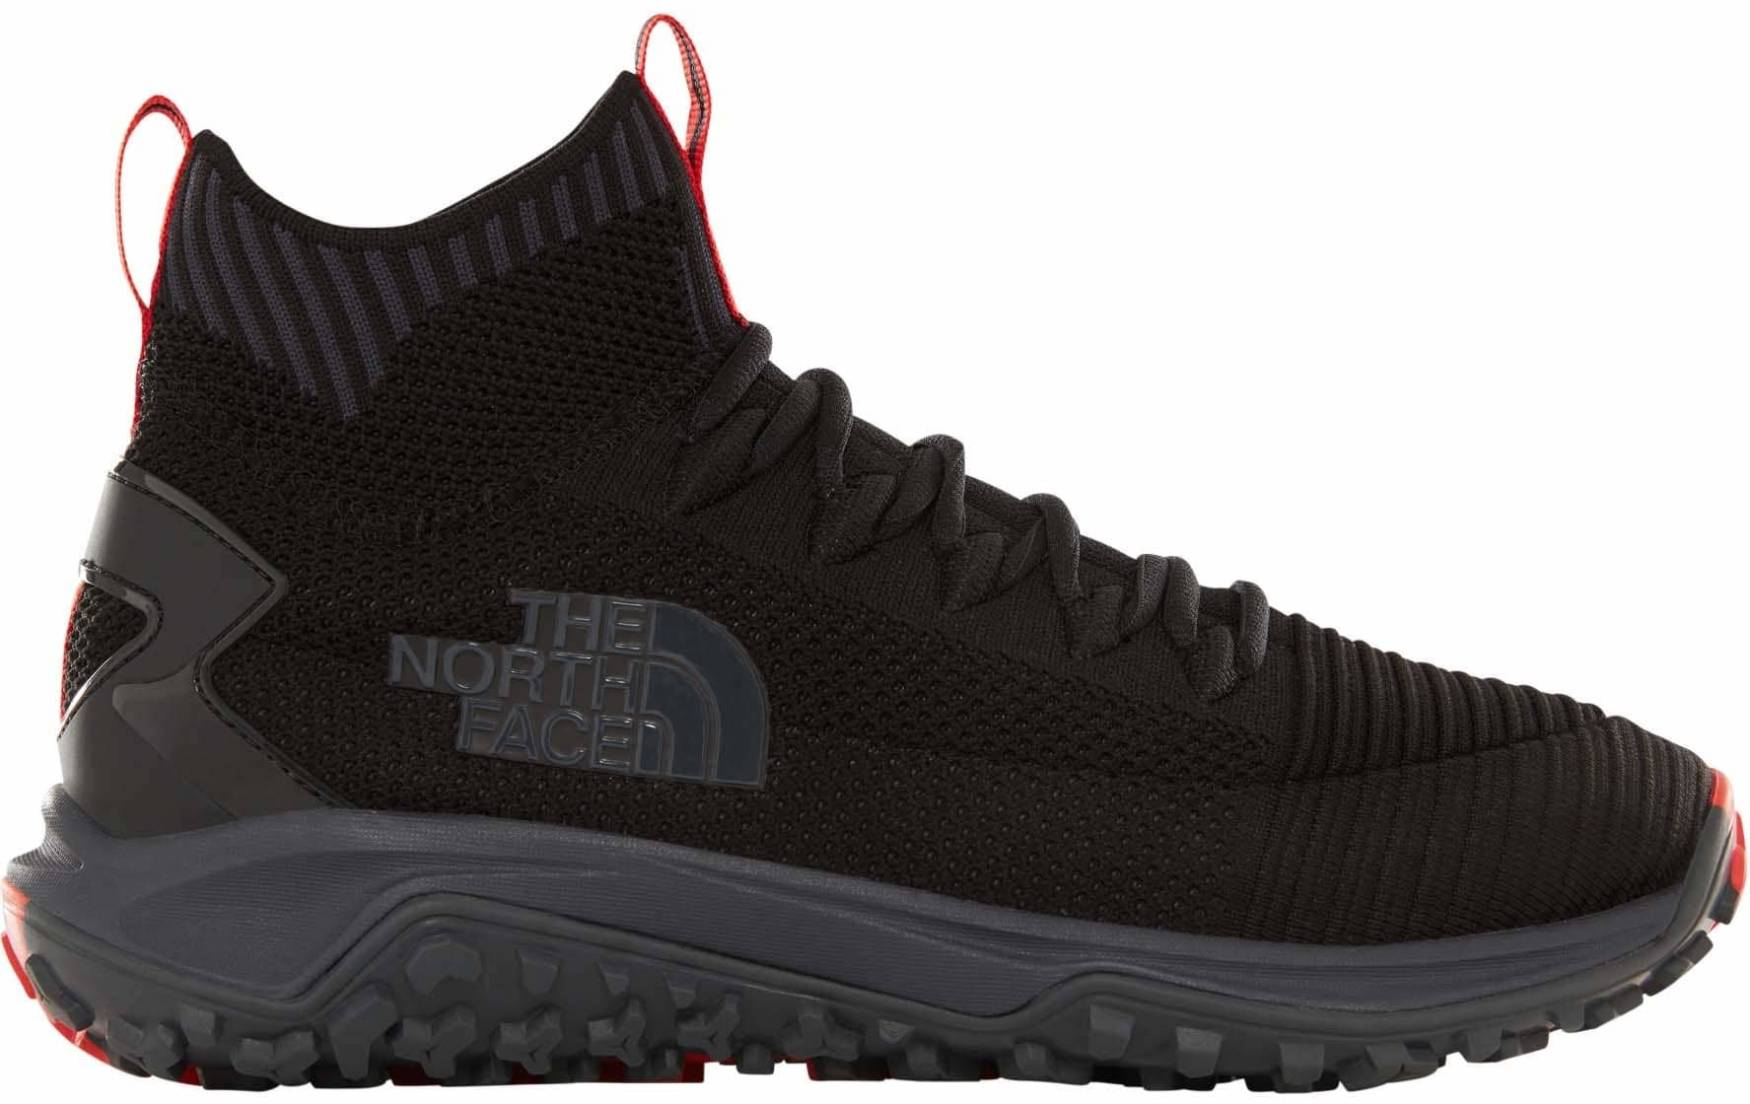 Review of The North Face Truxel Mid